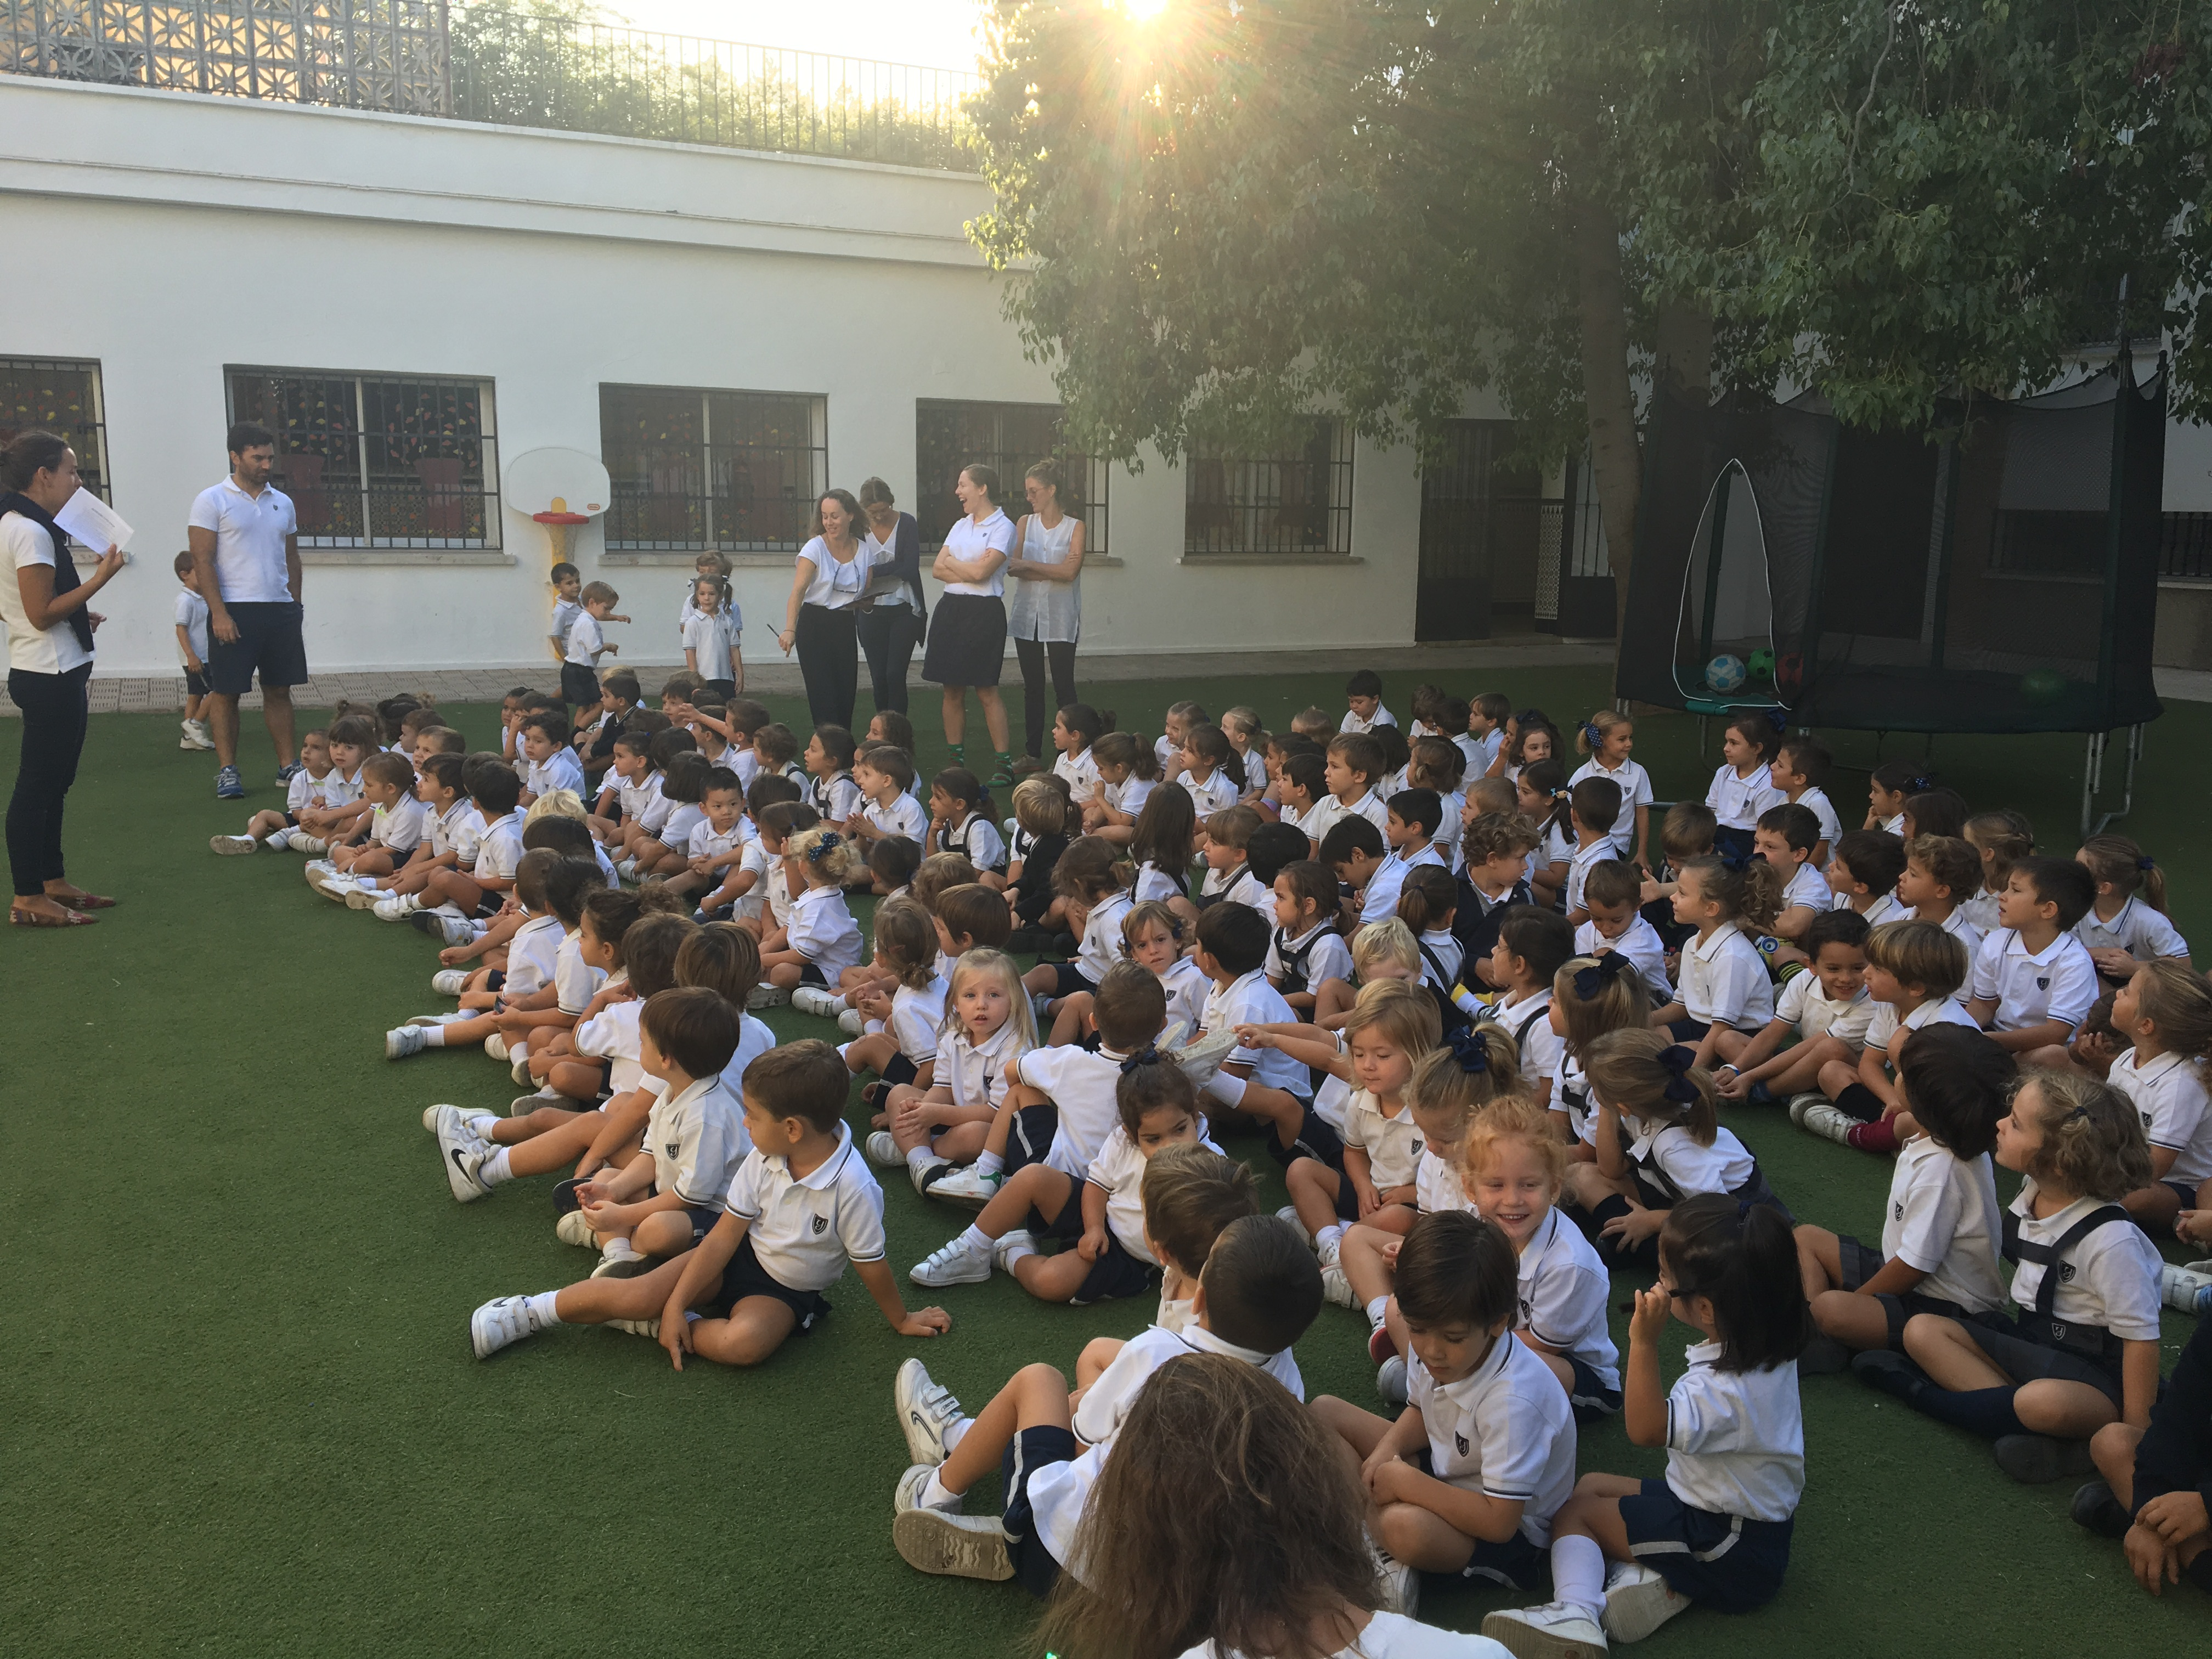 ASSEMBLY PARA TRABAJAR EL VALOR DEL MES DE SEPTIEMBRE: LA PUNTUALIDAD / ASSEMBLY: PUNCTUALITY IS THE VALUE OF THE MONTH OF SEPTEMBER